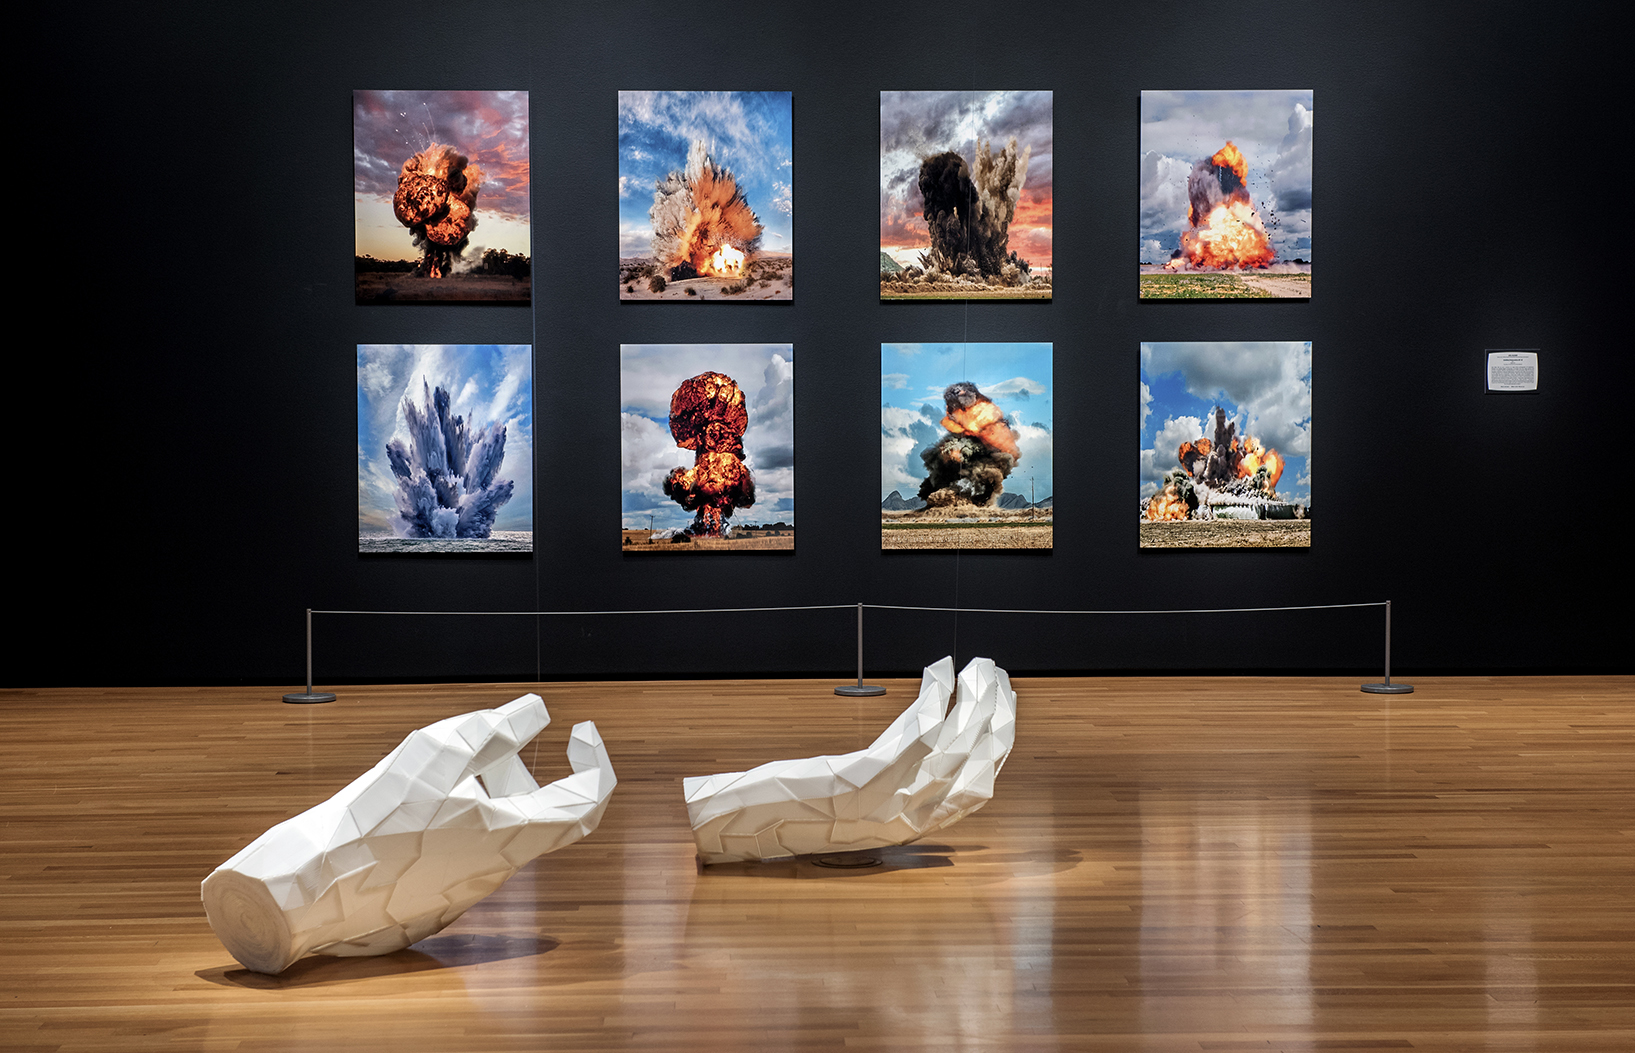 A pair of white, sculptural hands lay on a wood floor in a gallery with black walls featuring images of explosions.